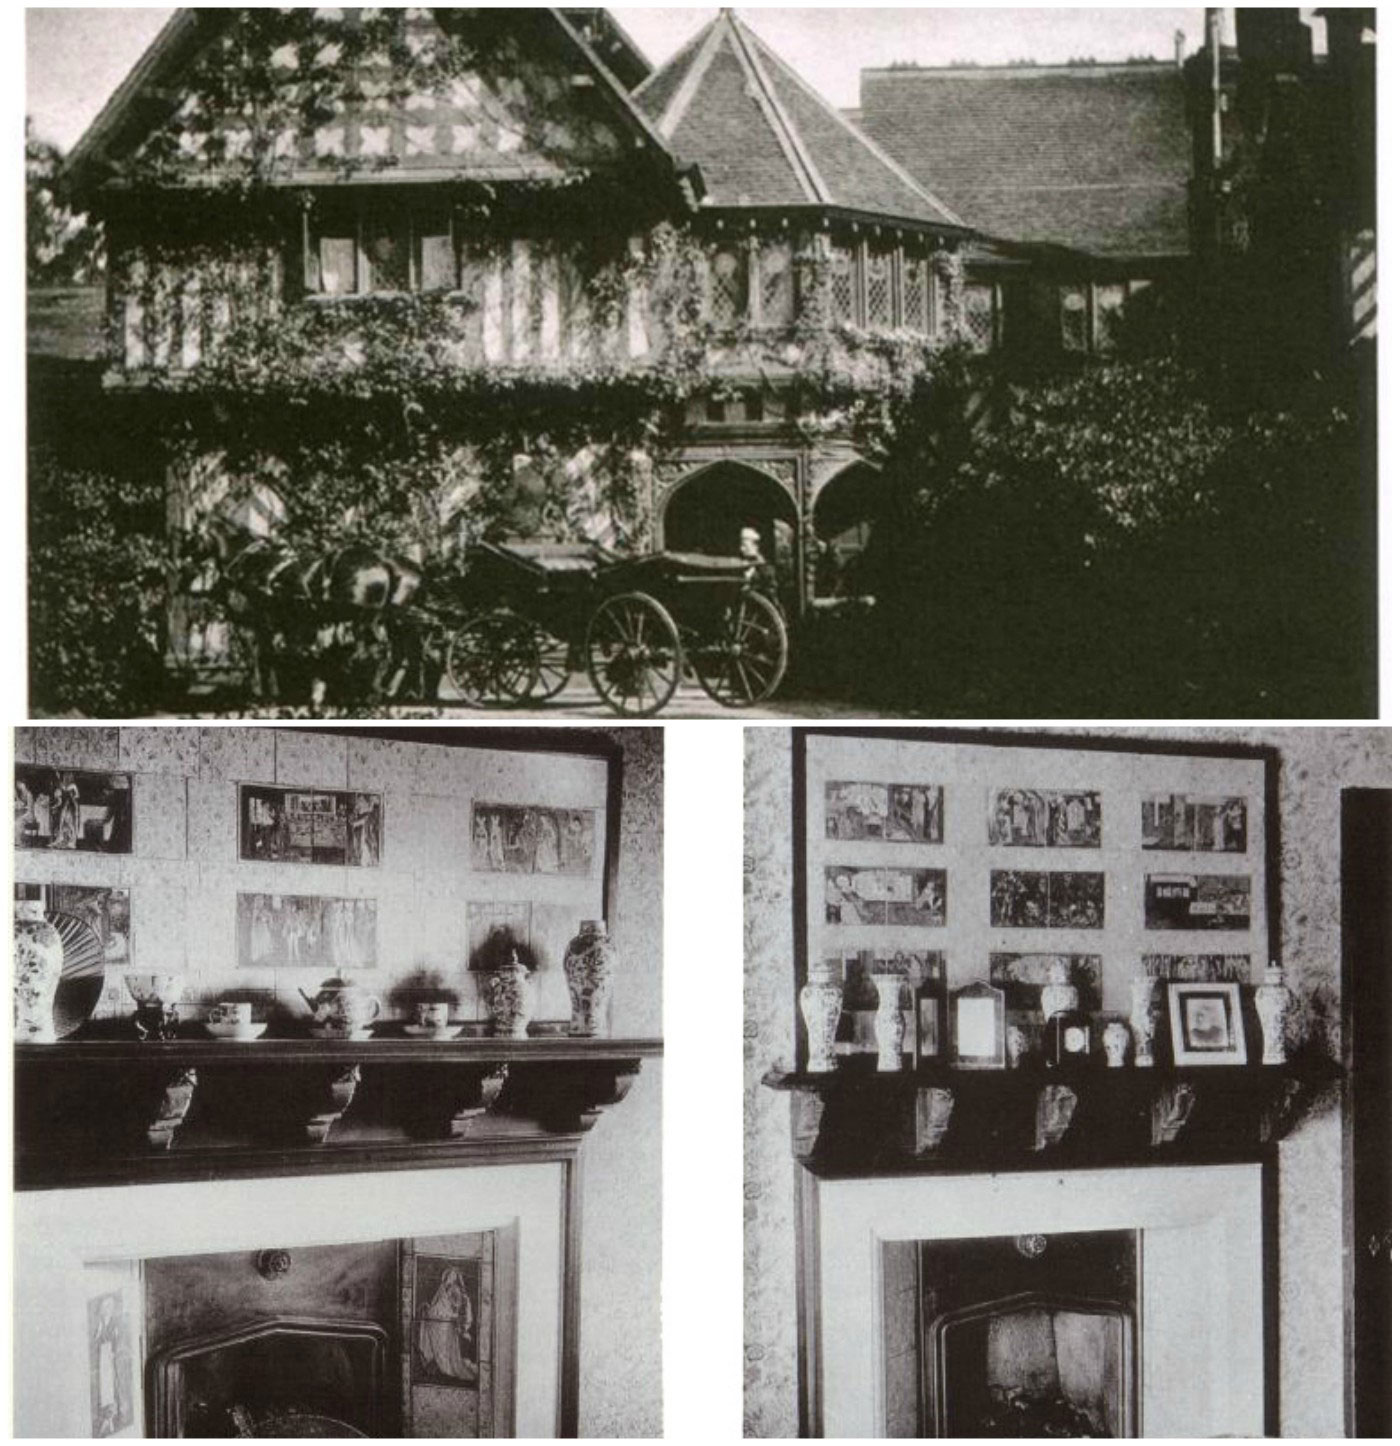 Top: architect Miles Birket Foster's 'The Hill', 1880. The Hill was demolisted in 1953. Bottom: Morris and Burne-Jones Cinderella and Sleeping Beauty overmantel tiles at 'The Hill'.